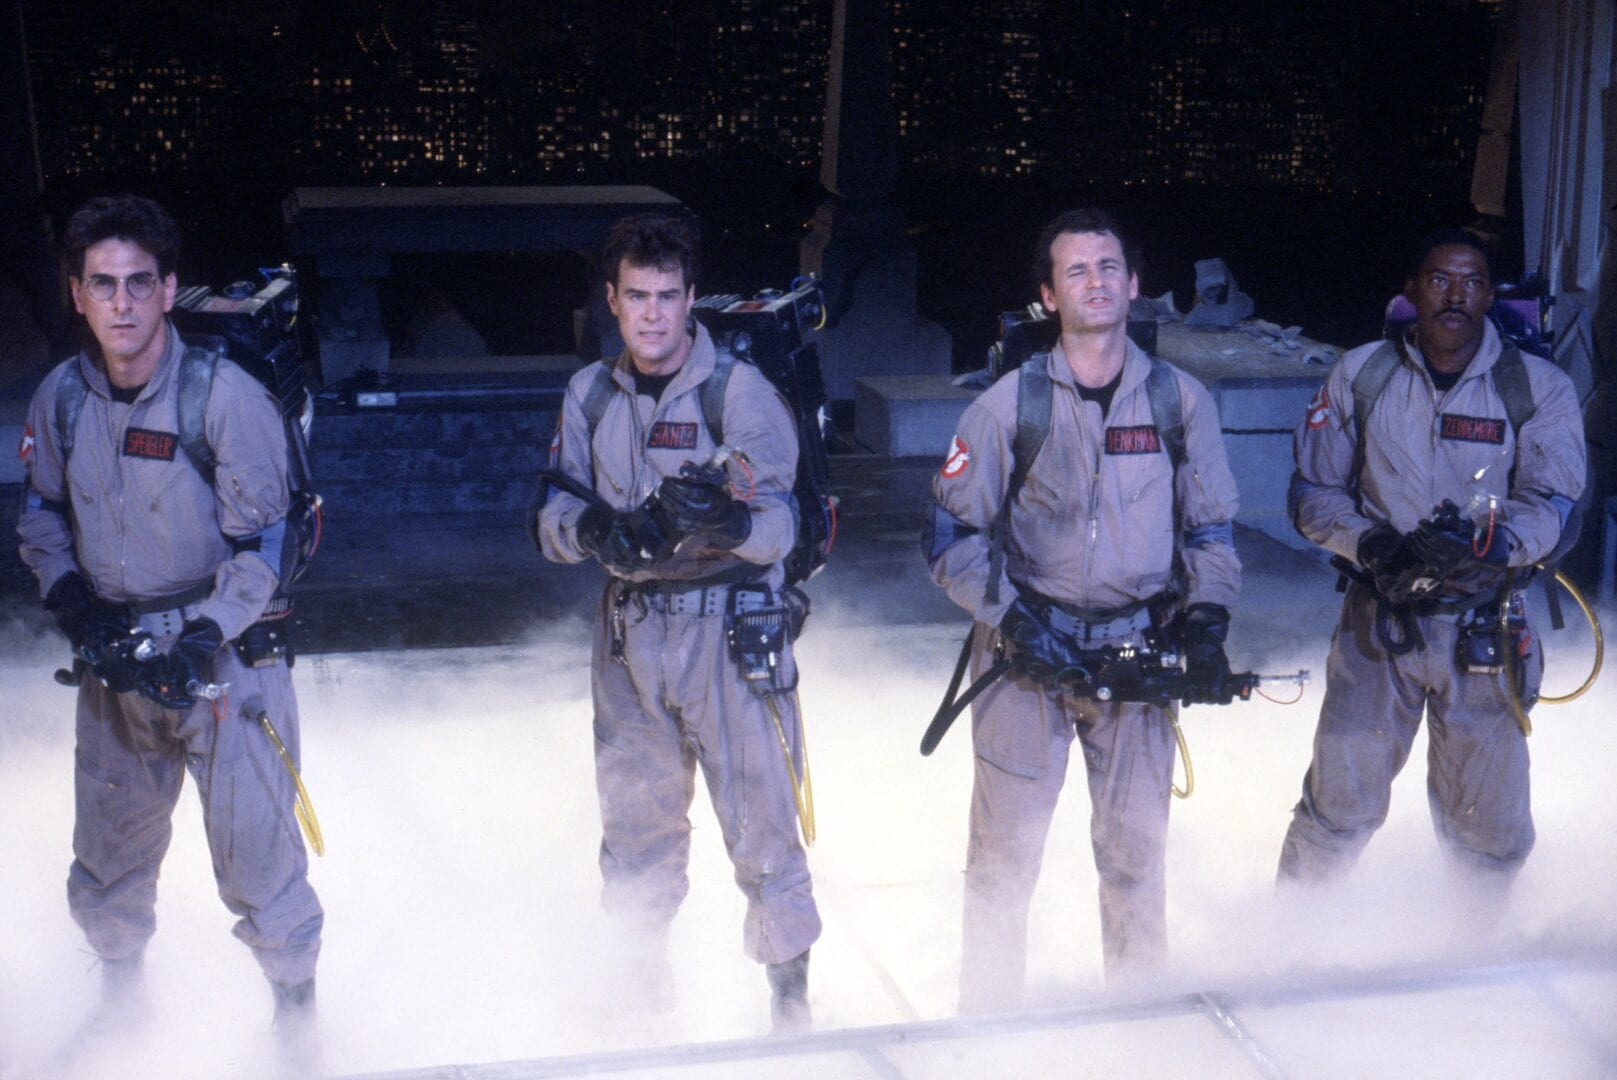 ghostbusters cast 1984